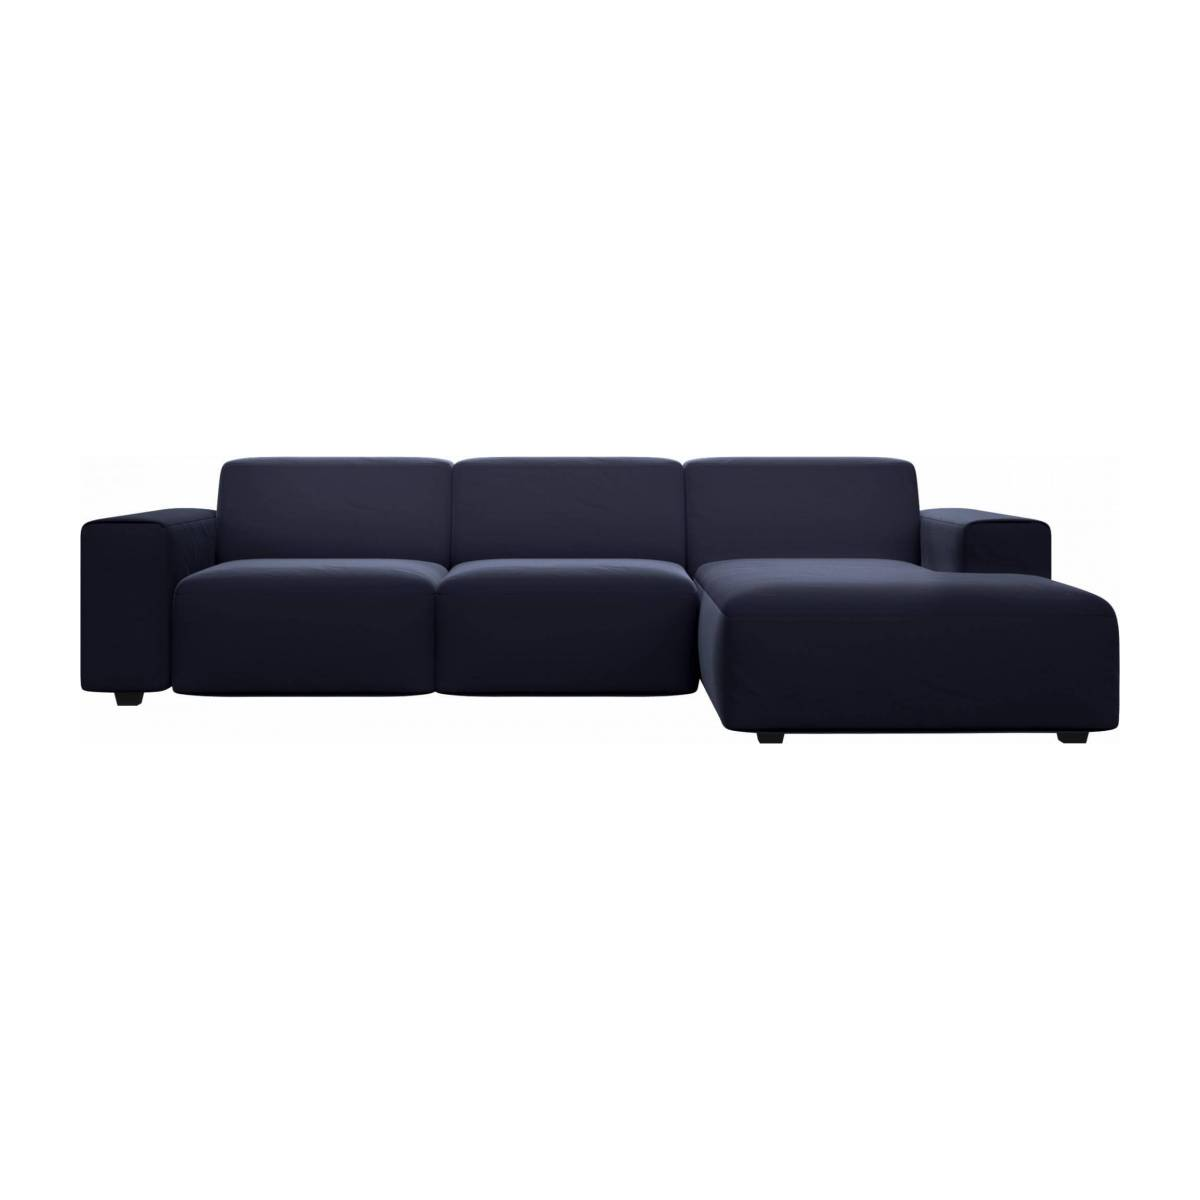 3 seater sofa with chaise longue on the right in Super Velvet fabric, dark blue n°1